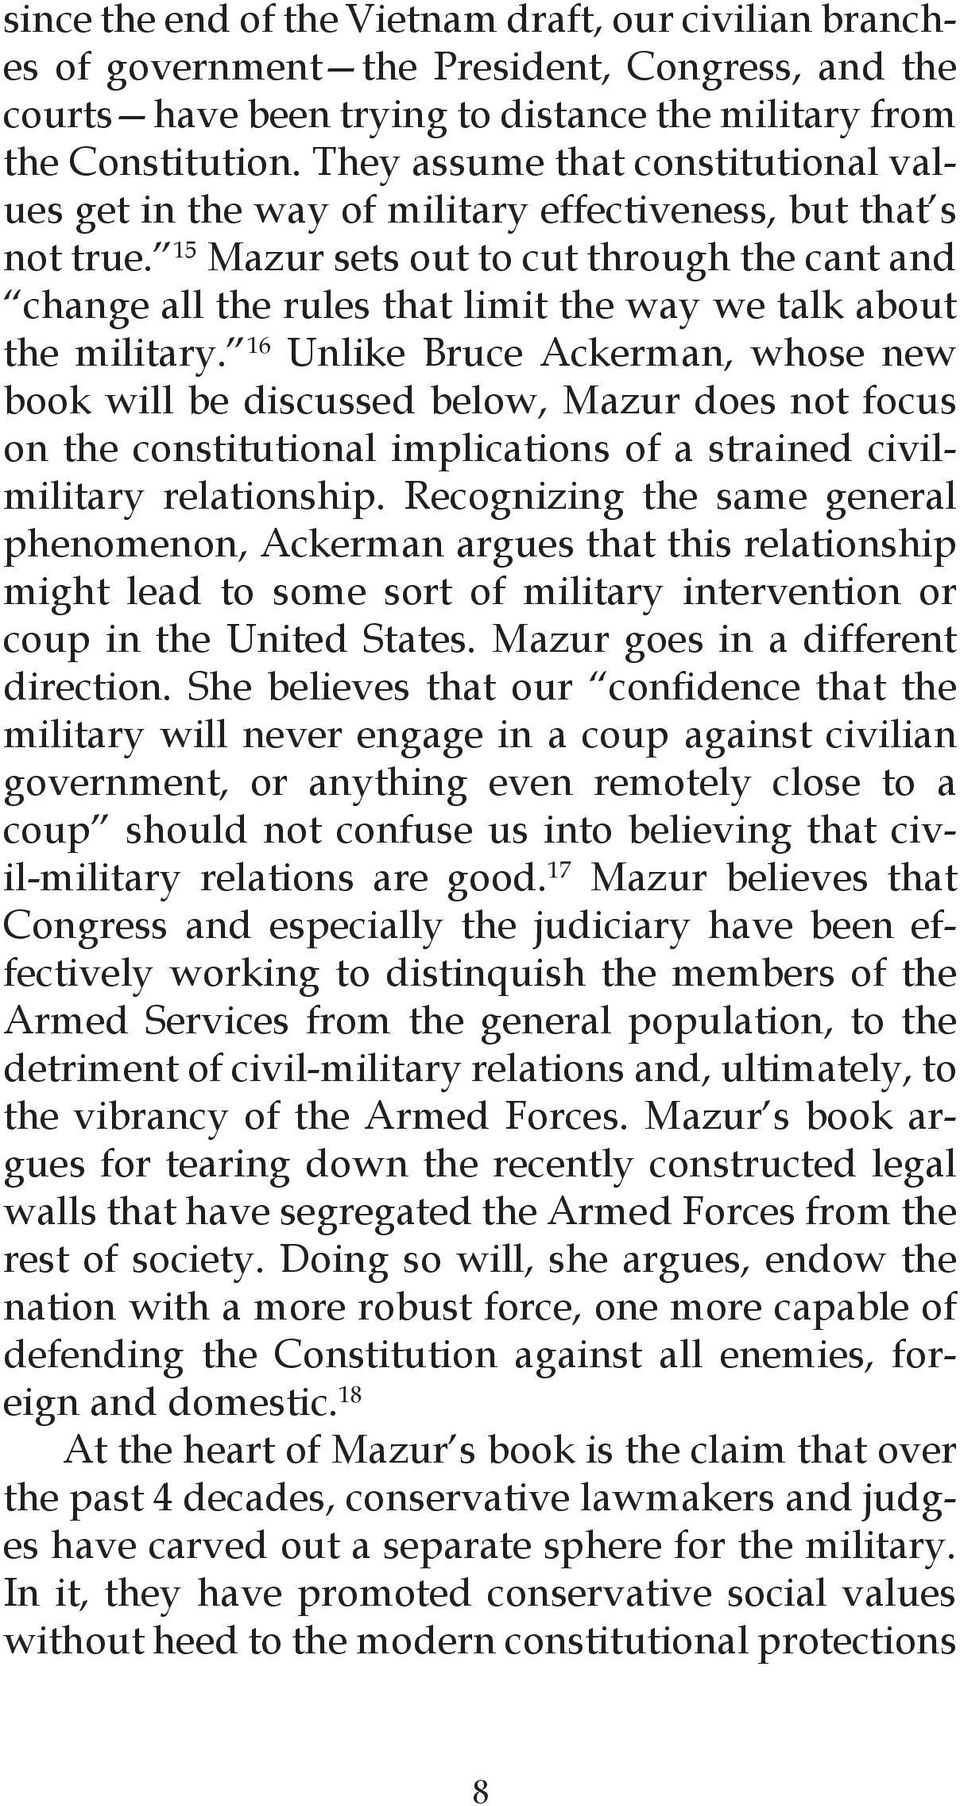 15 Mazur sets out to cut through the cant and change all the rules that limit the way we talk about the military.